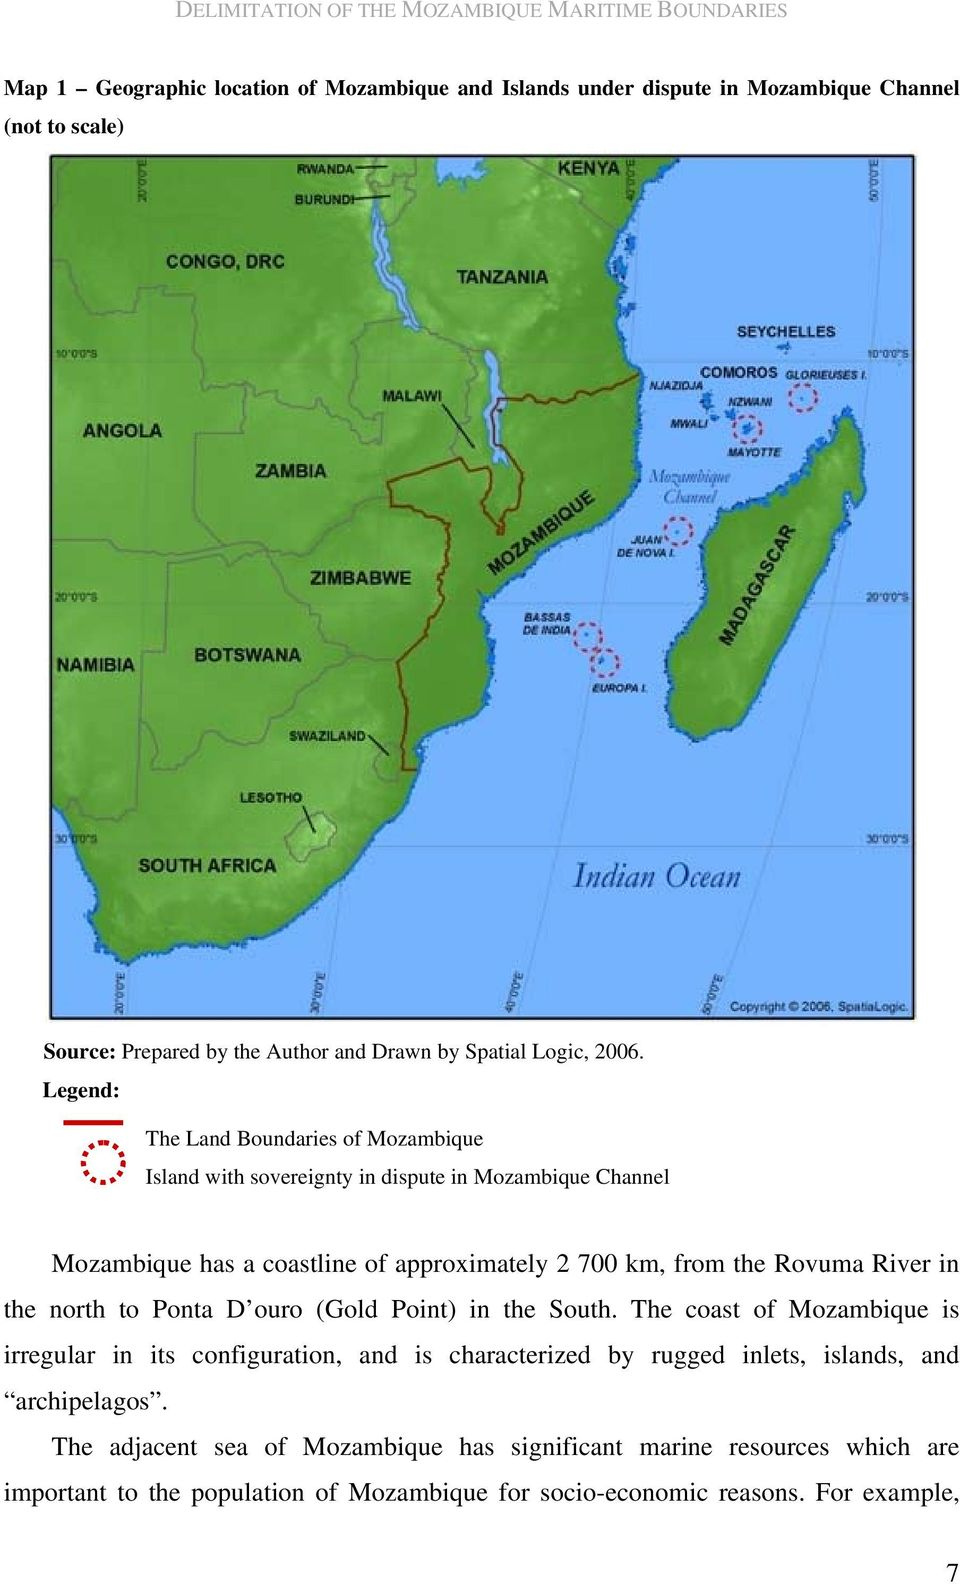 Legend: The Land Boundaries of Mozambique Island with sovereignty in dispute in Mozambique Channel Mozambique has a coastline of approximately 2 700 km, from the Rovuma River in the